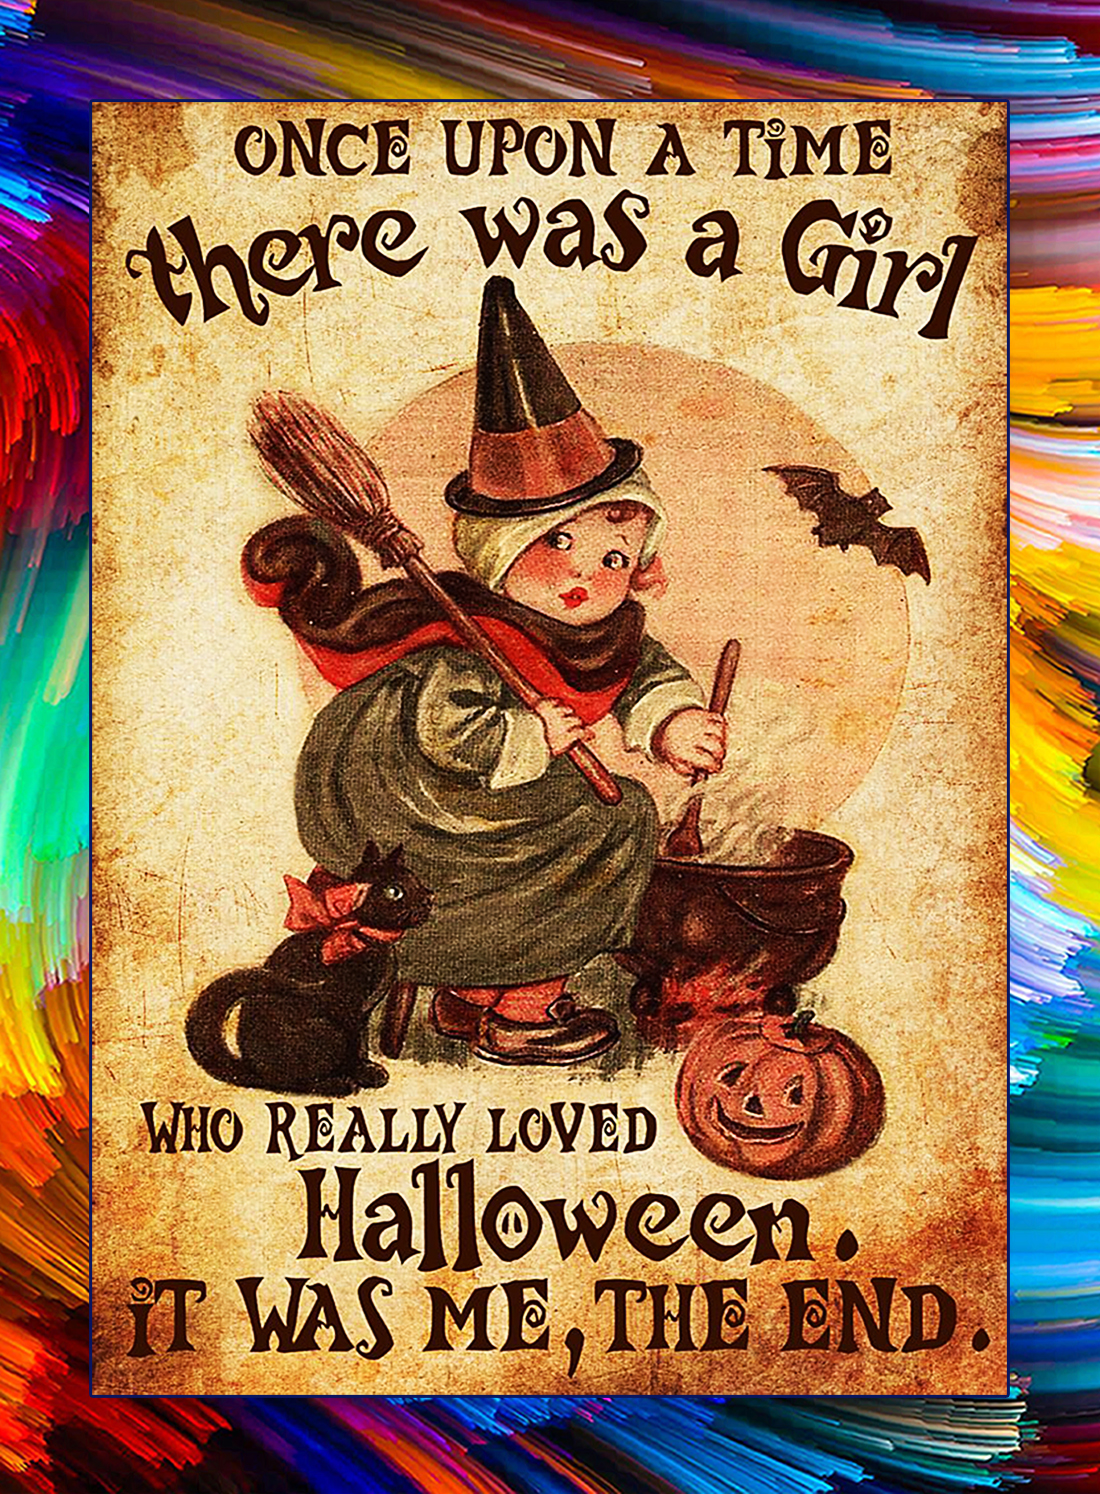 There was a girl who really loved halloween poster